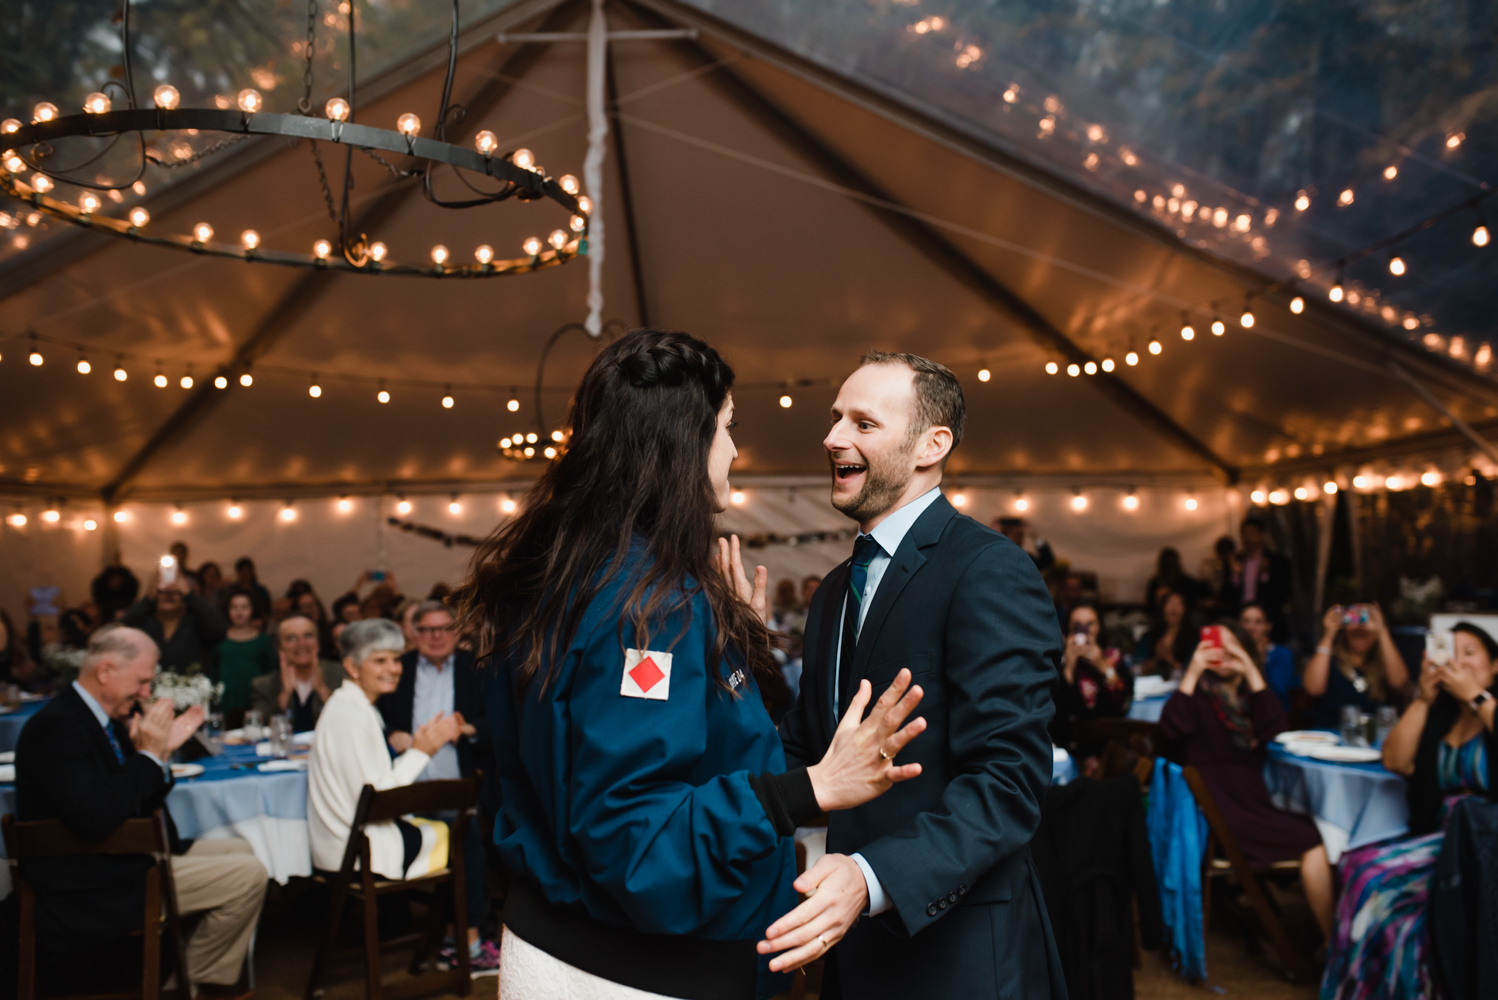 Squamish Wedding Photographer131.jpg